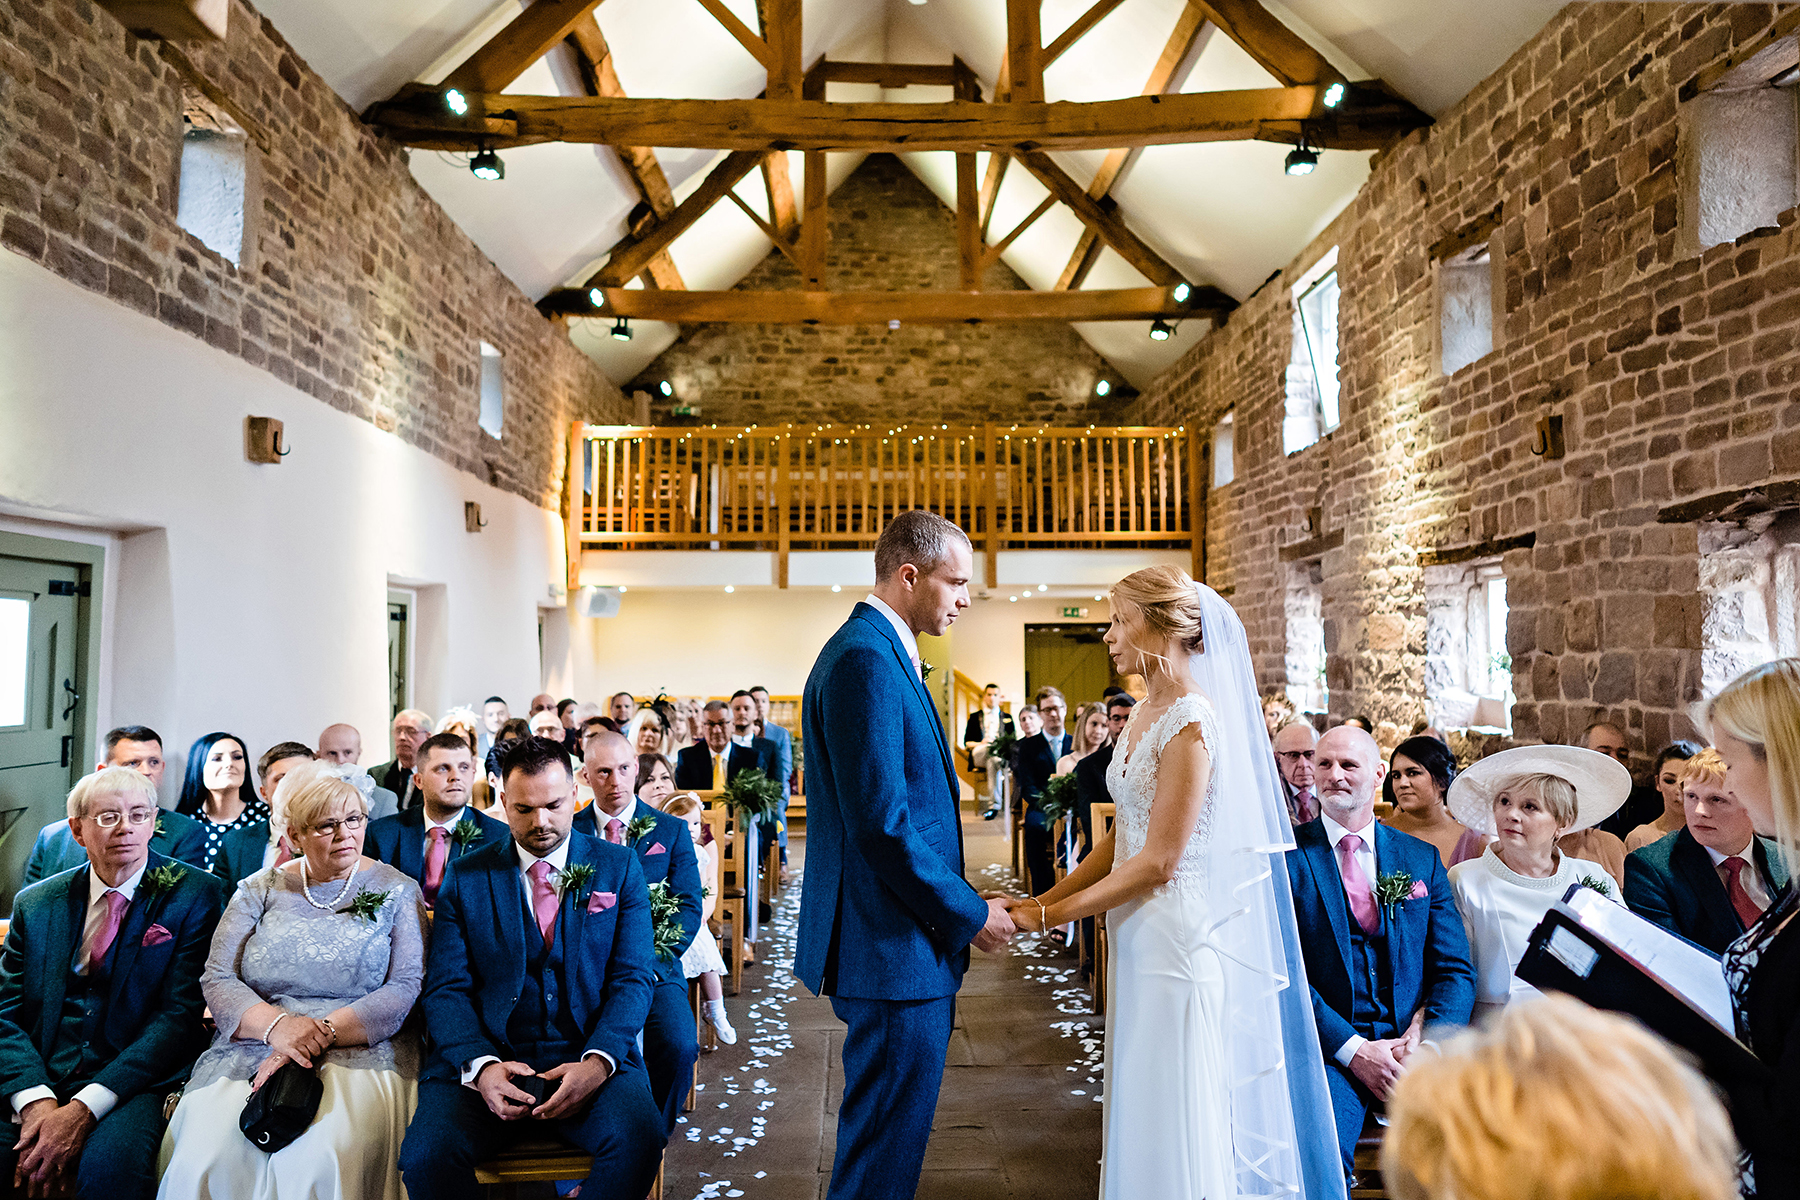 wide angle wedding photography of the ashes wedding barn during a wedding ceremony